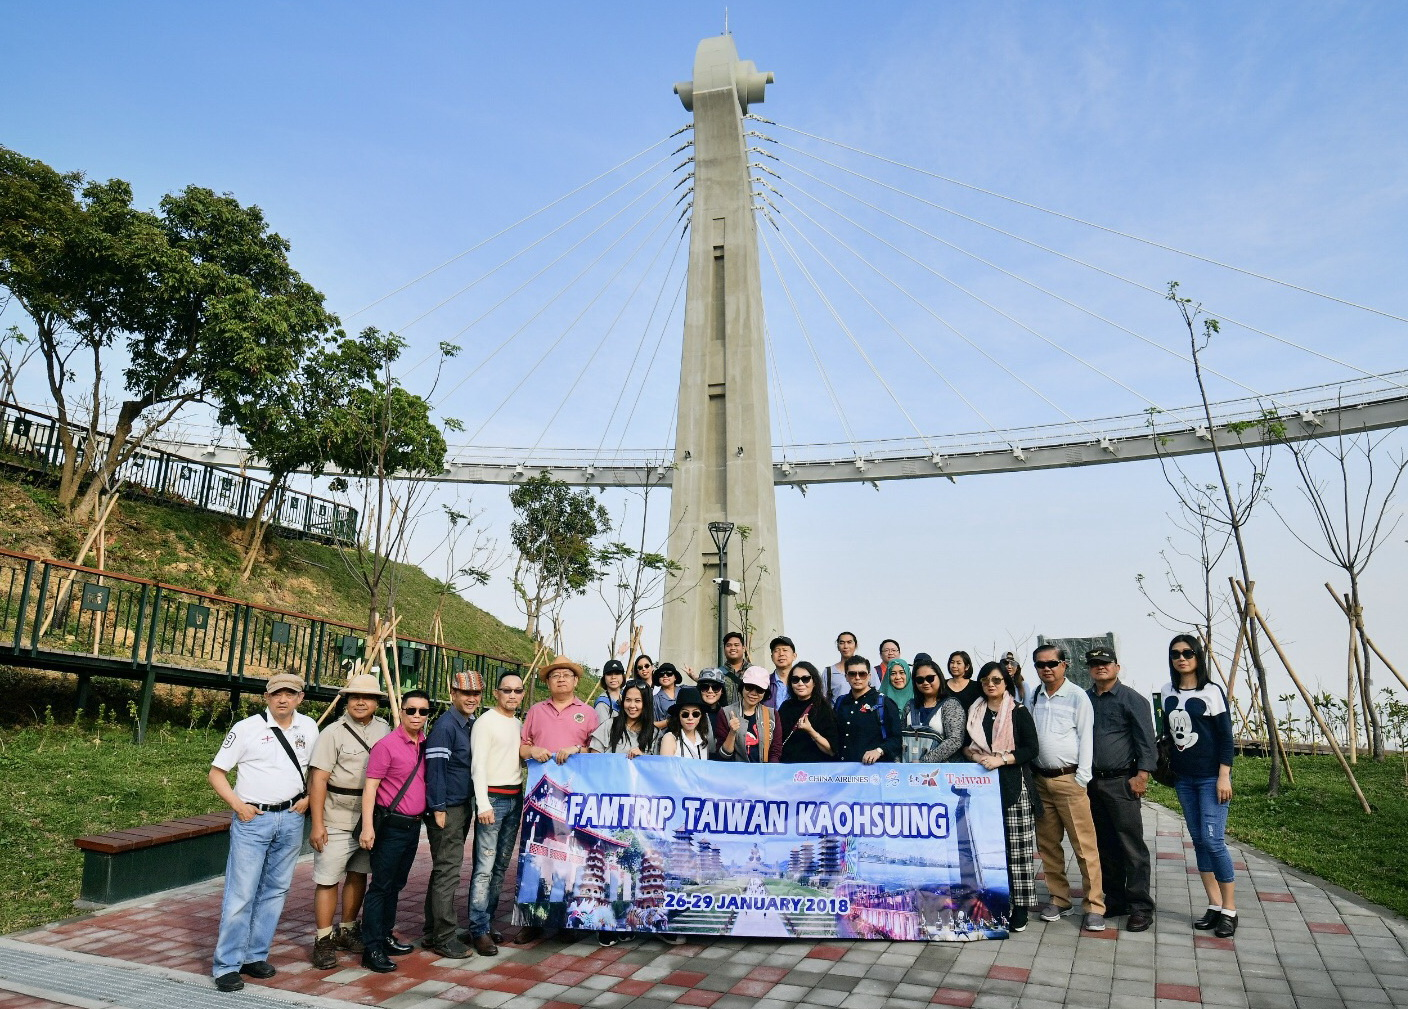 Thai tourism industry gets curious about Kaohsiung